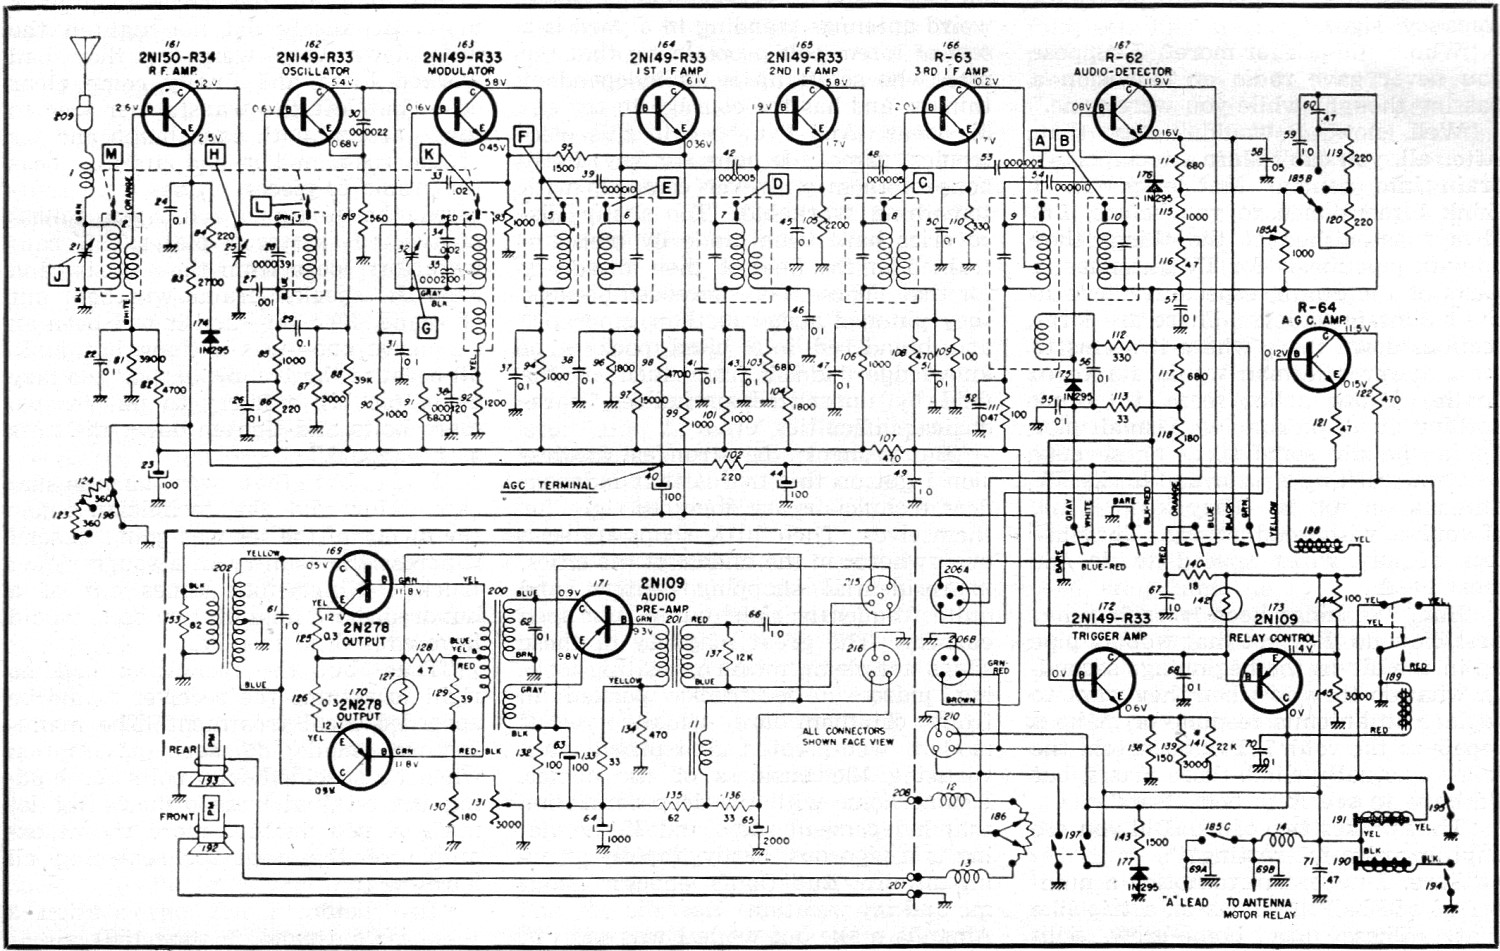 US6747367 moreover Adaptive Lighting System For Automobiles besides Varistor furthermore Reading Circuit Diagrams in addition 12ax7 Tube Datasheet. on wiring circuits